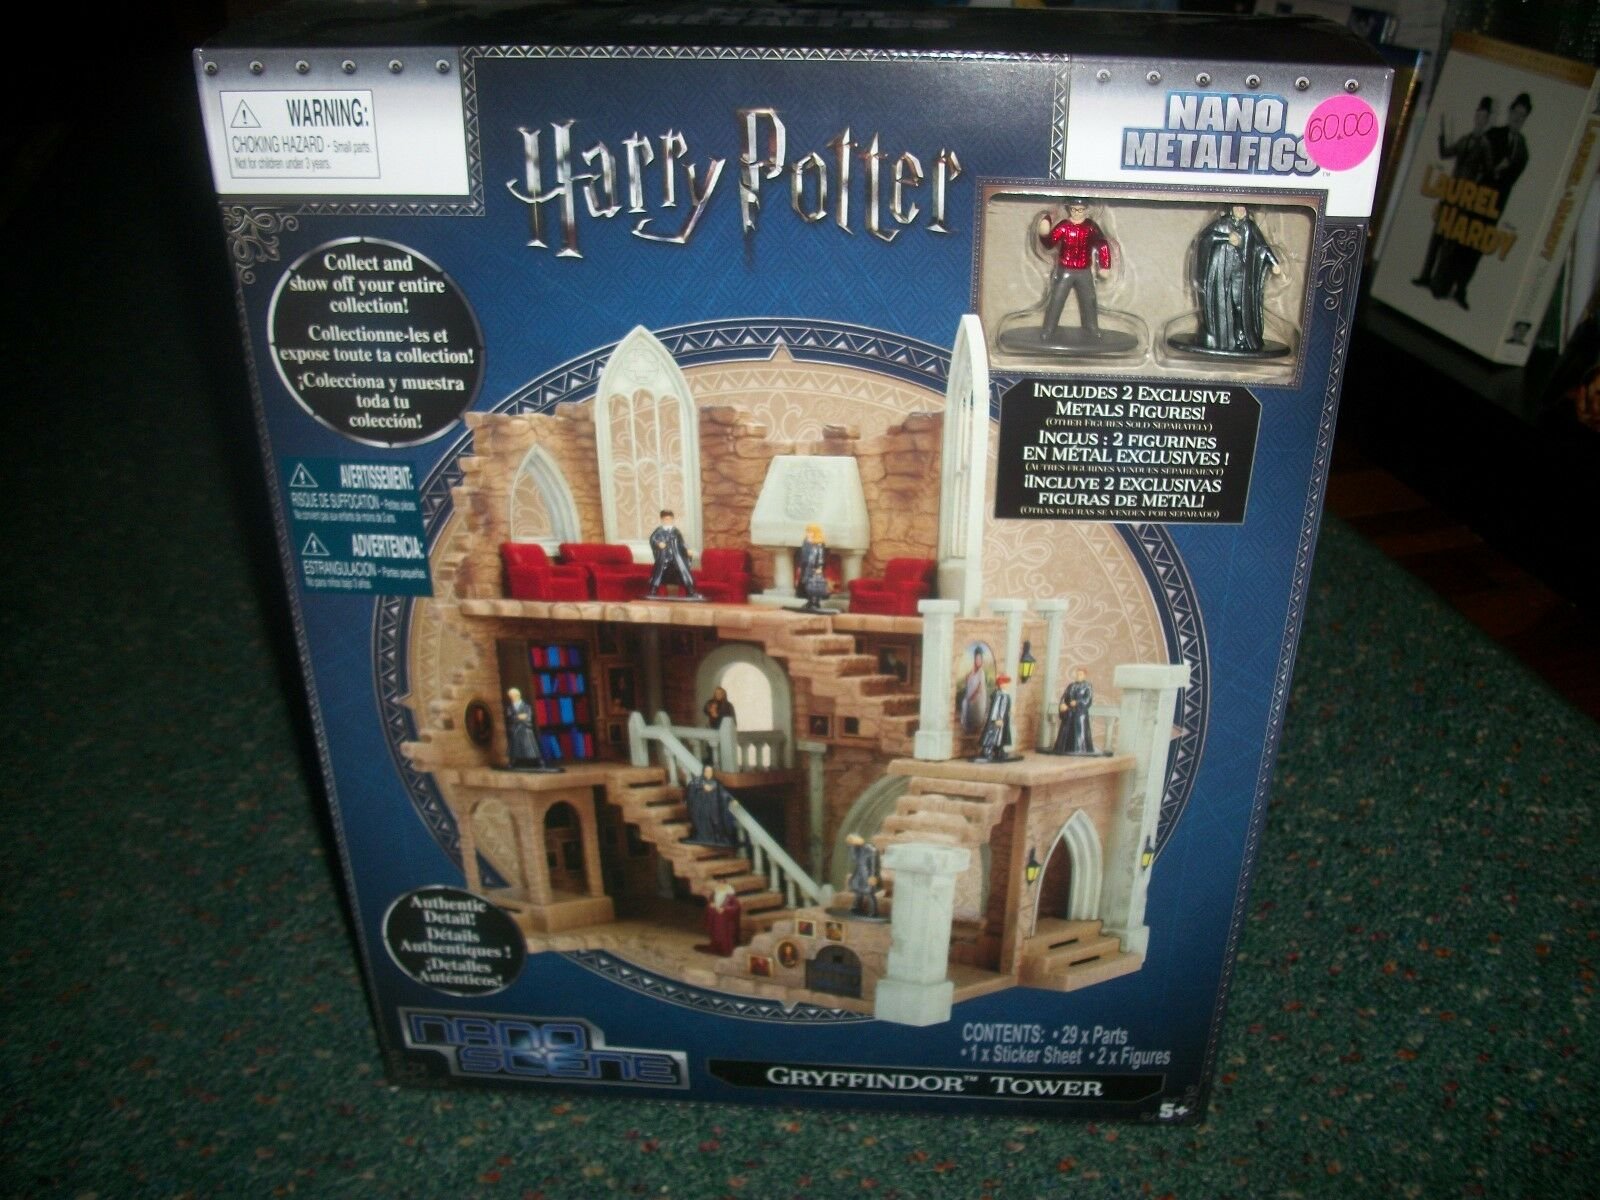 Harry - potter - nano metalfigs - gryffindor tower abgeriegelt.